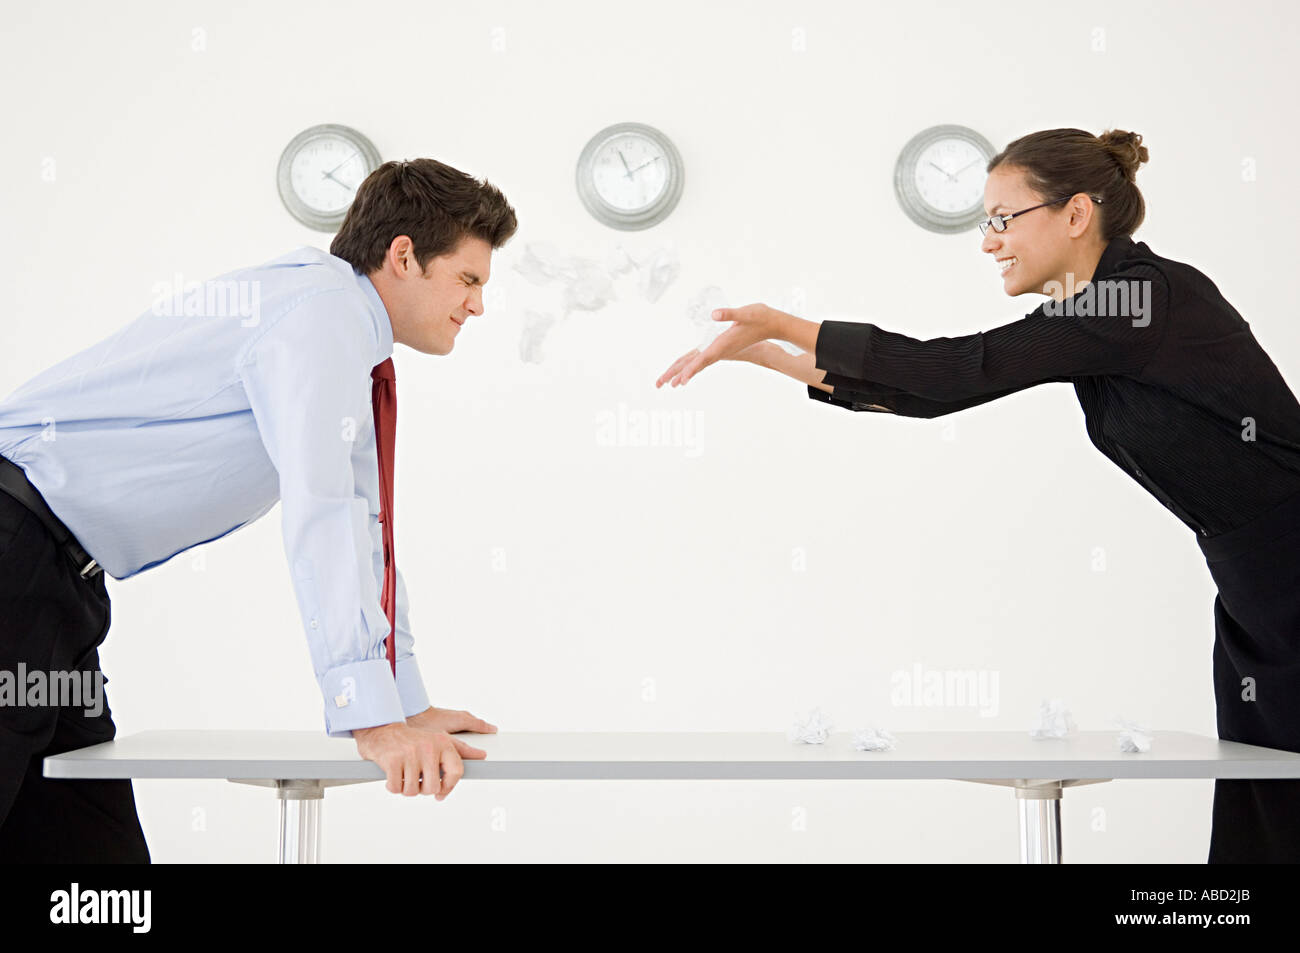 Woman throwing screwed up paper at man - Stock Image